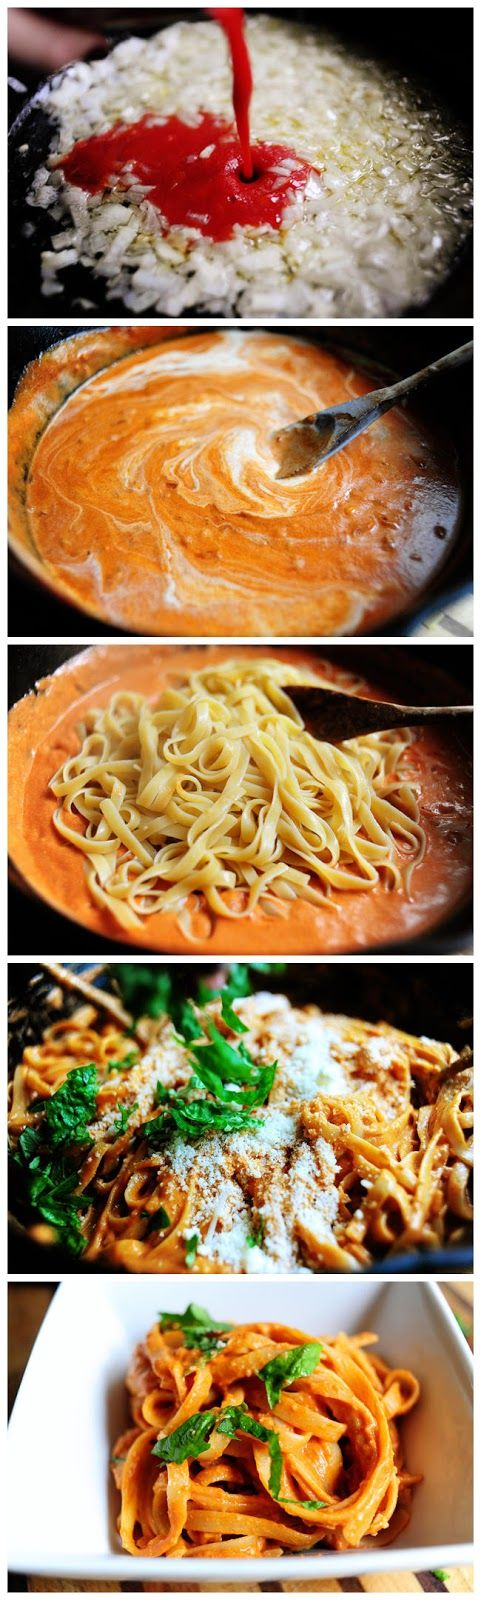 Pasta with Tomato Cream Sauce. Super easy!